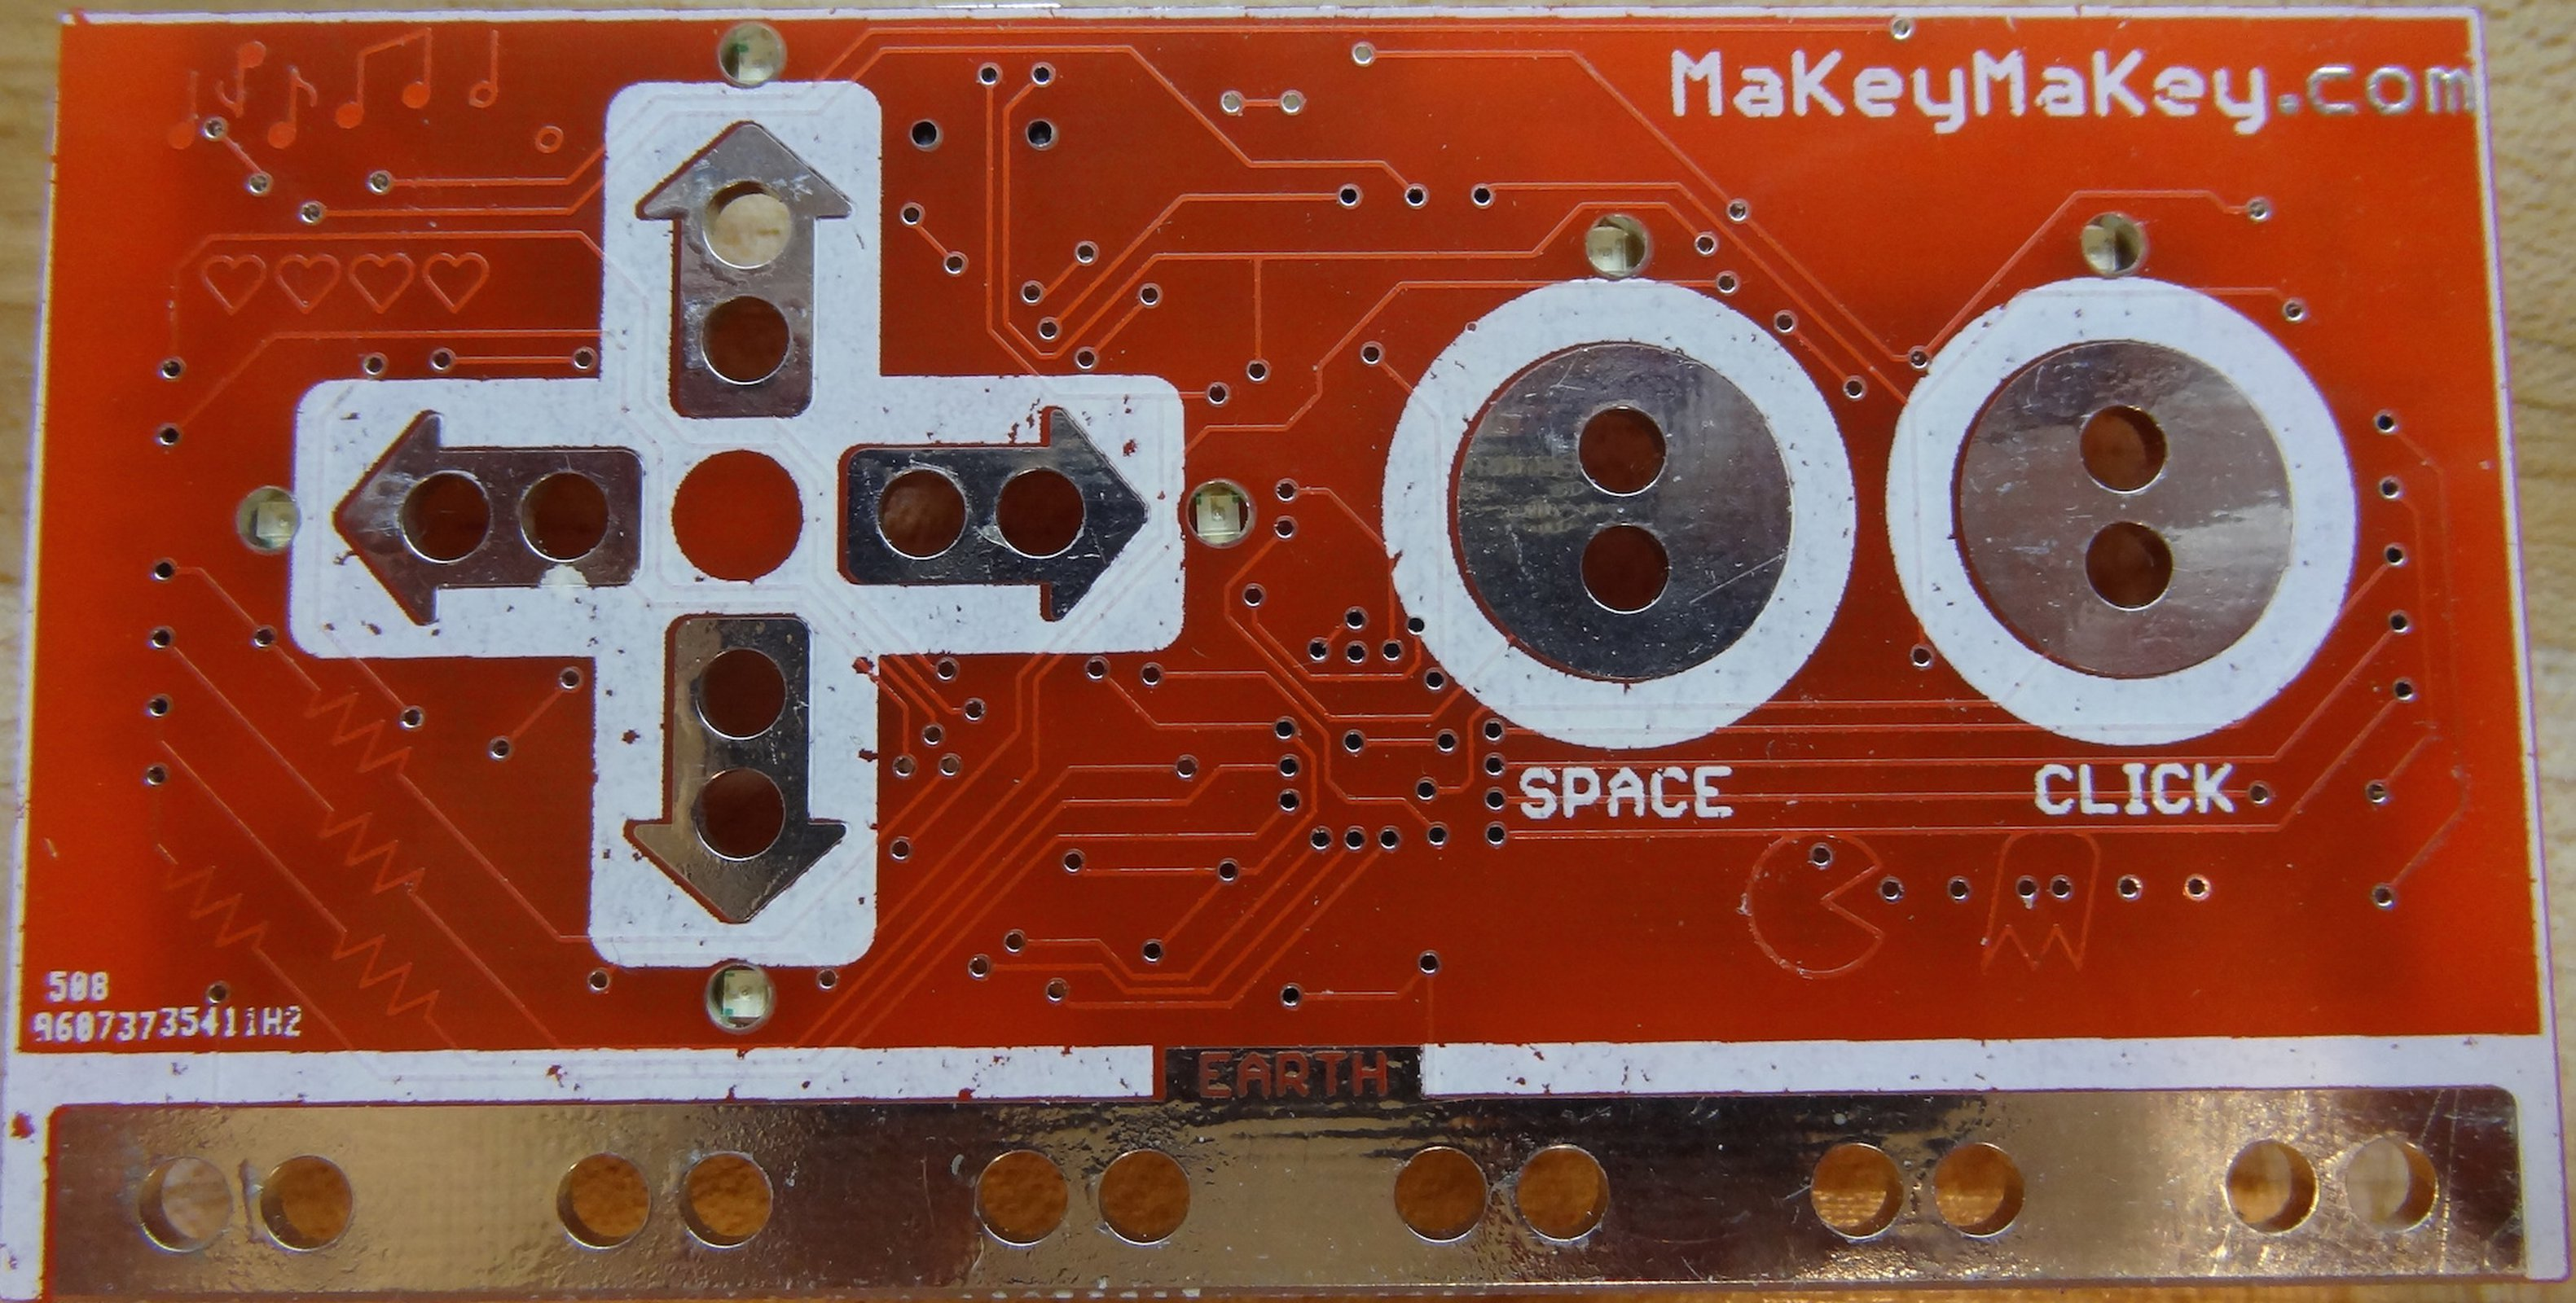 Makeymakey Pcb Only From Tomkeddie On Tindie Circuit Board Maker Buy Printed Makerpcb 1